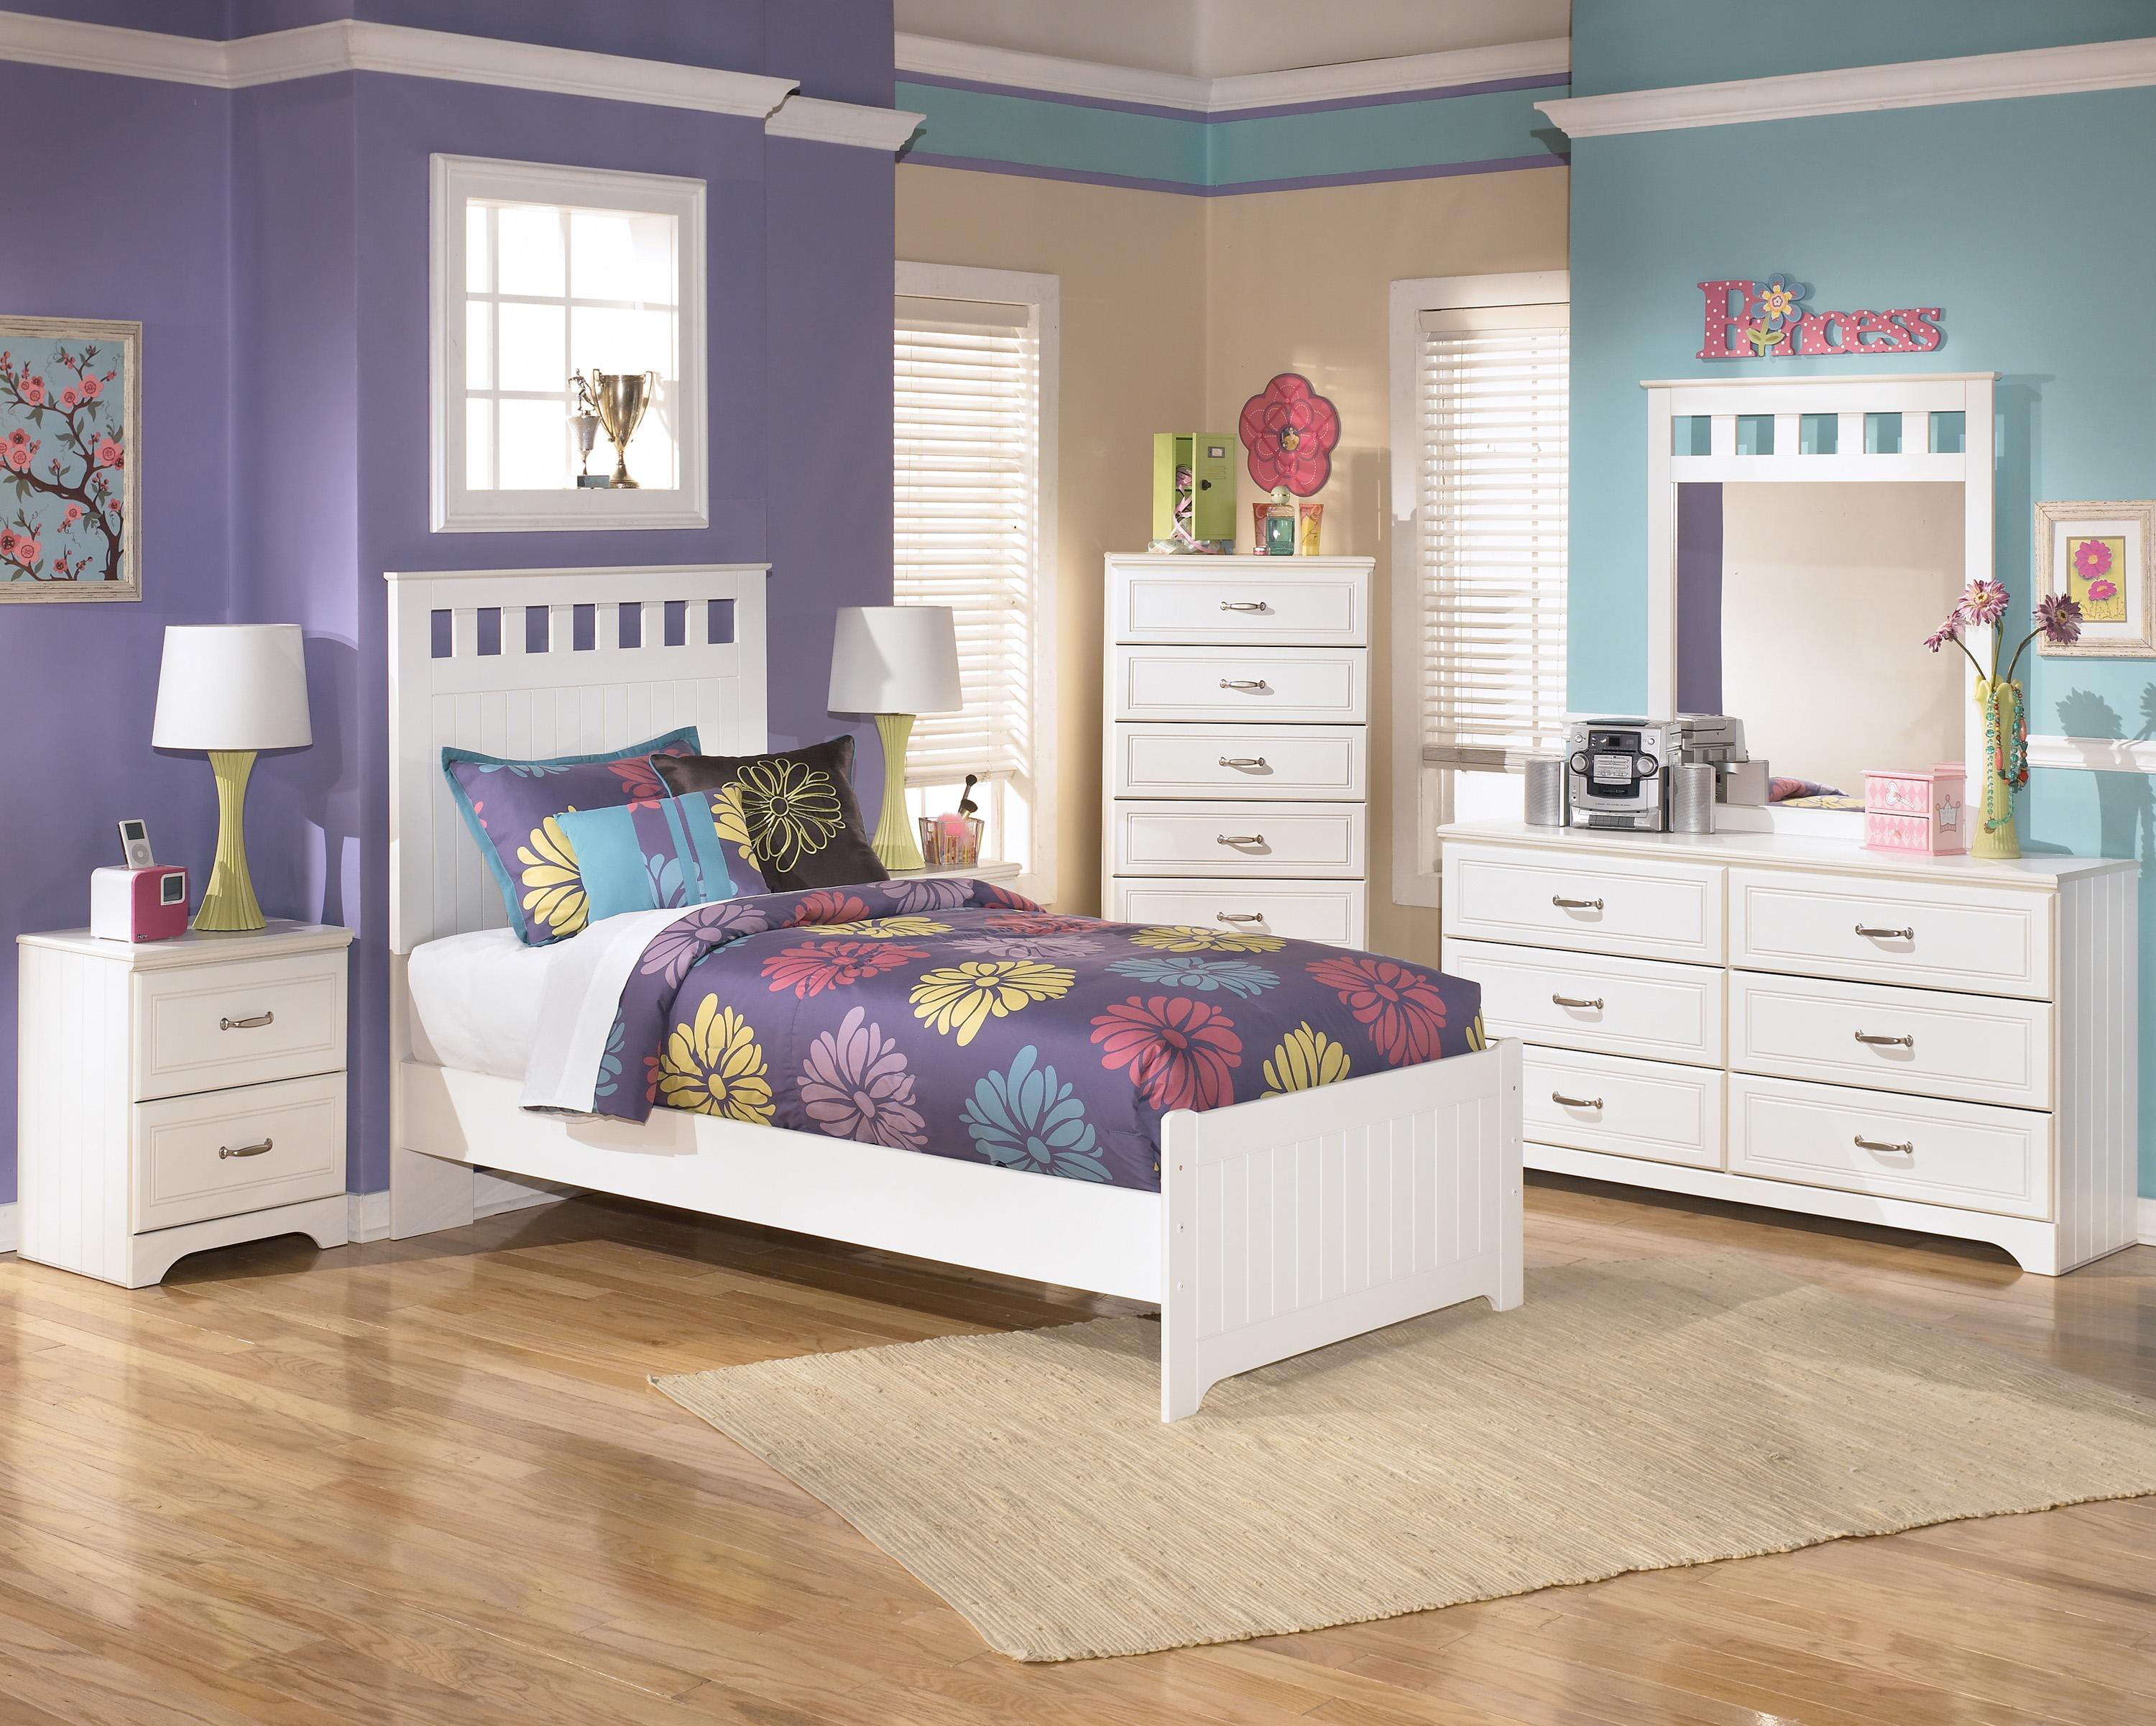 Lulu Twin Bedroom Group by Signature Design by Ashley at Zak's Warehouse Clearance Center